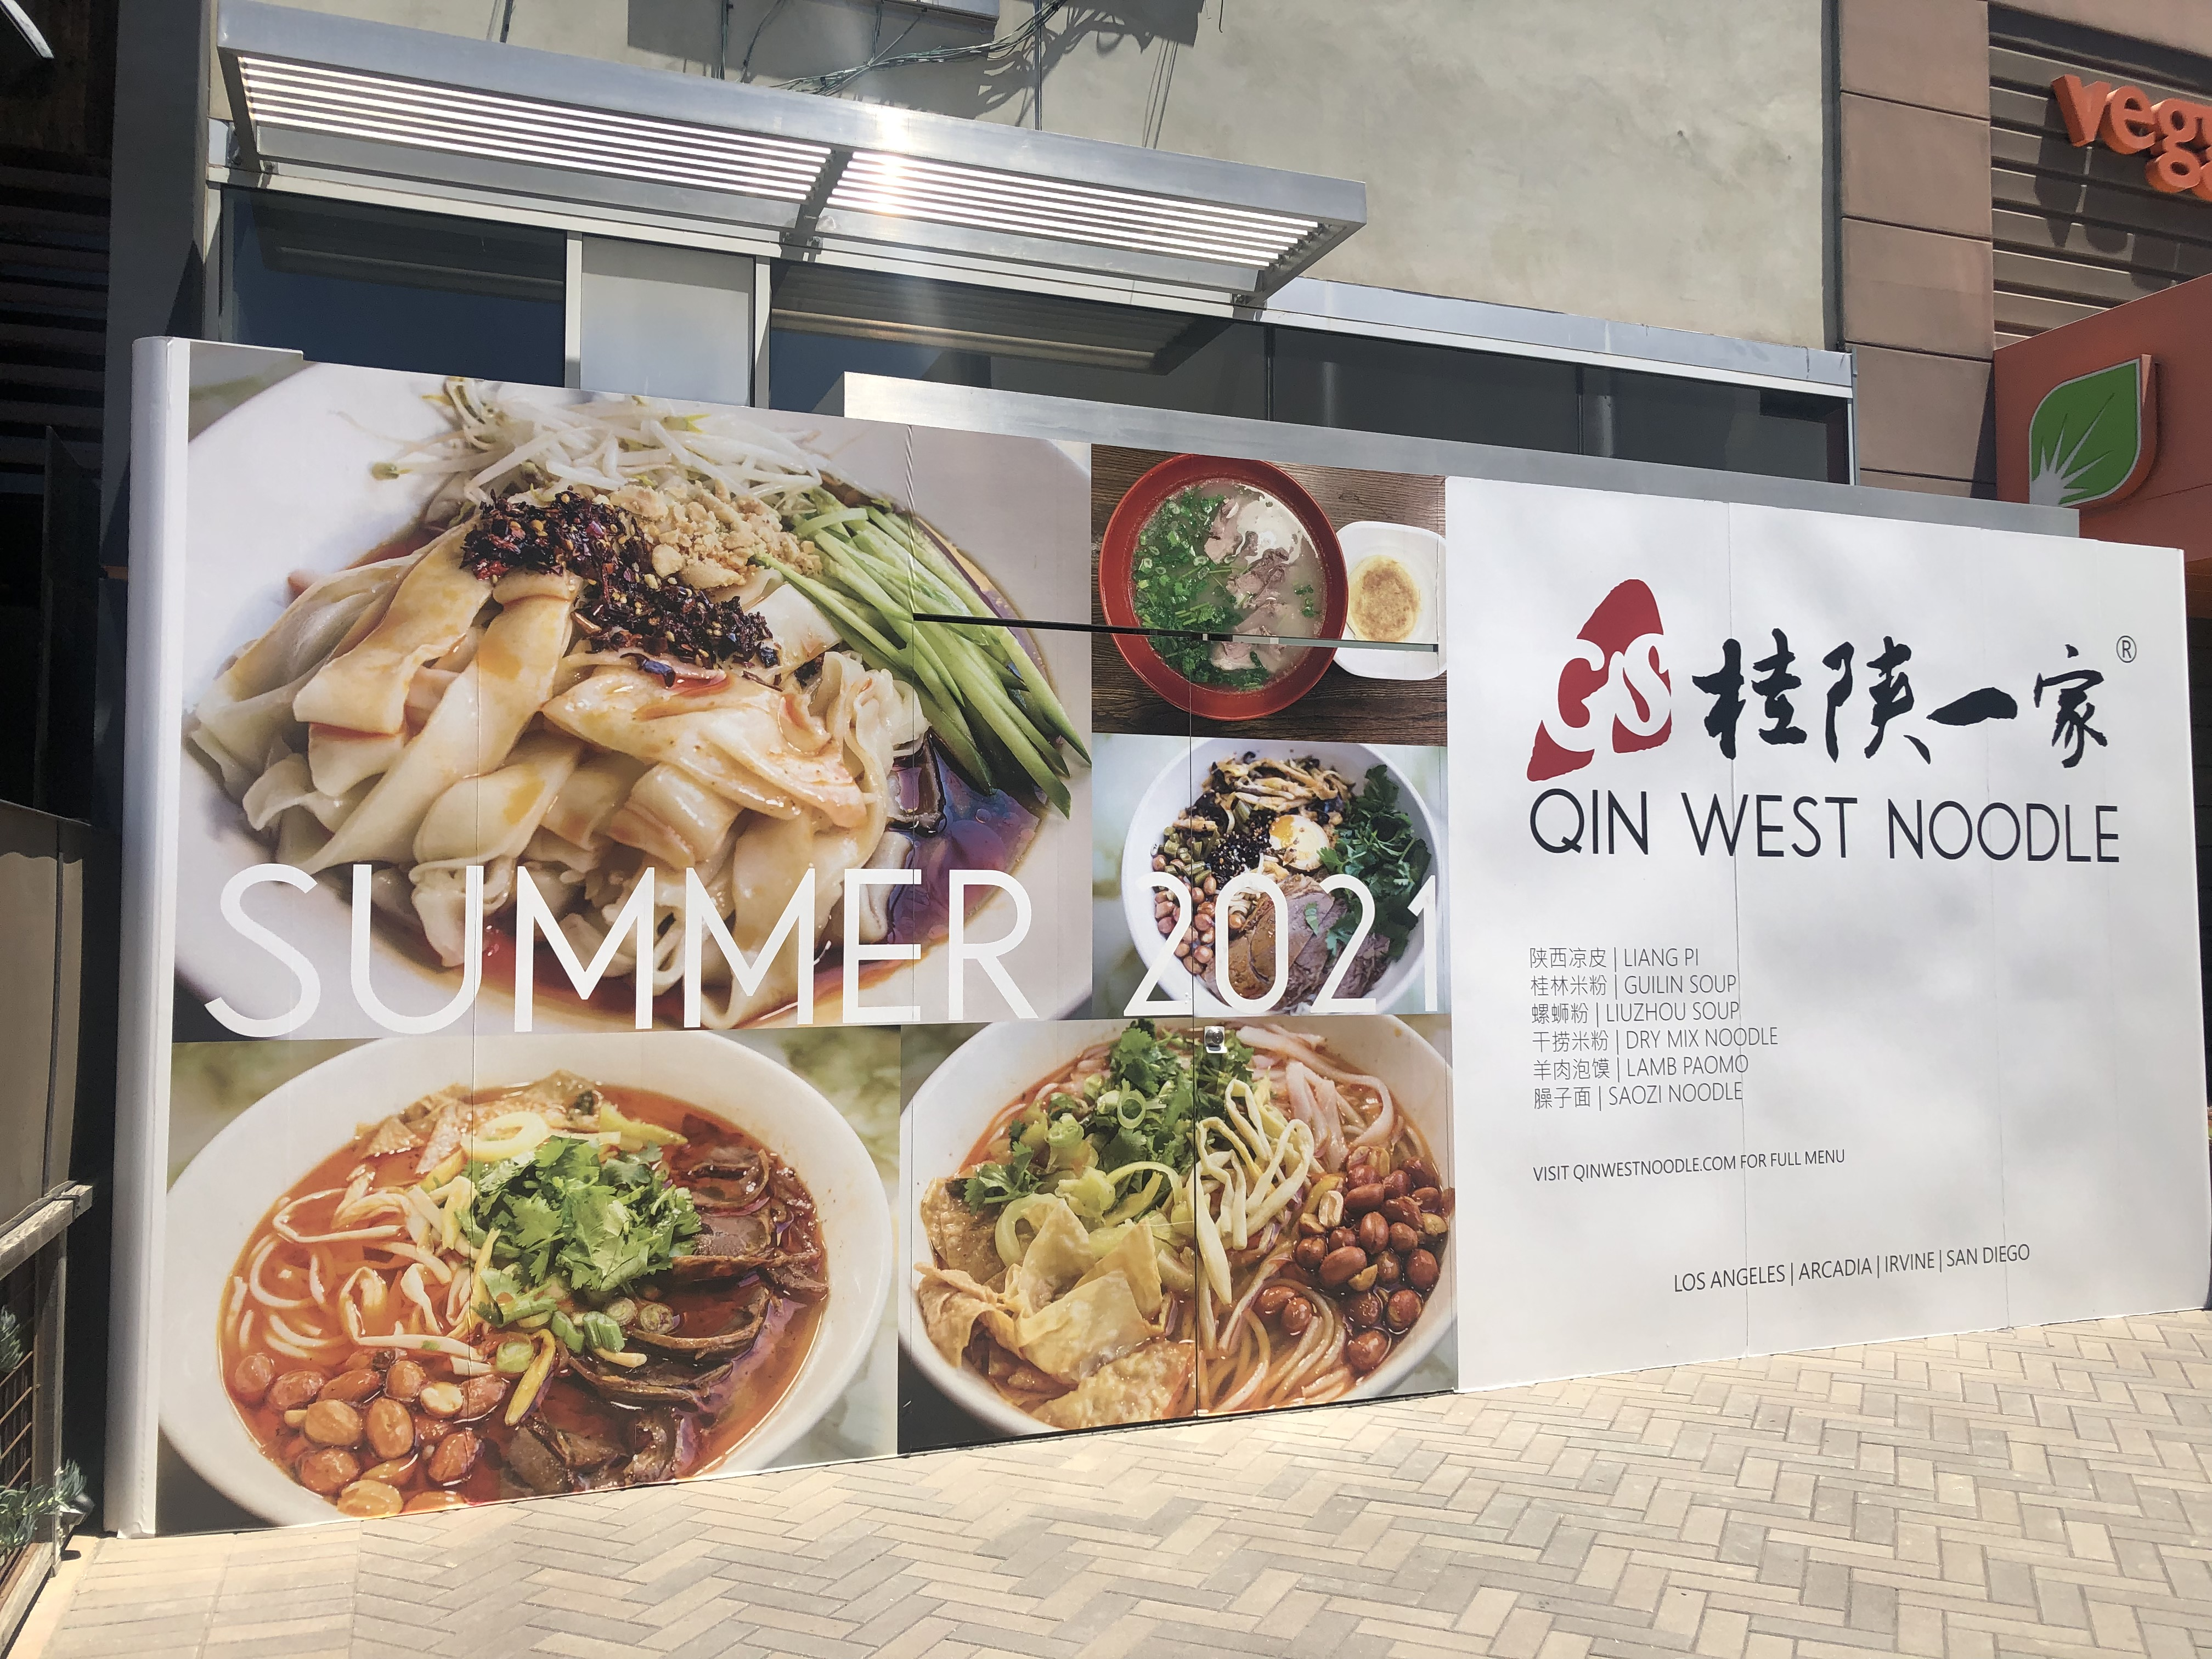 Temporary sign at Qin West Noodle lists Summer 2021 opening